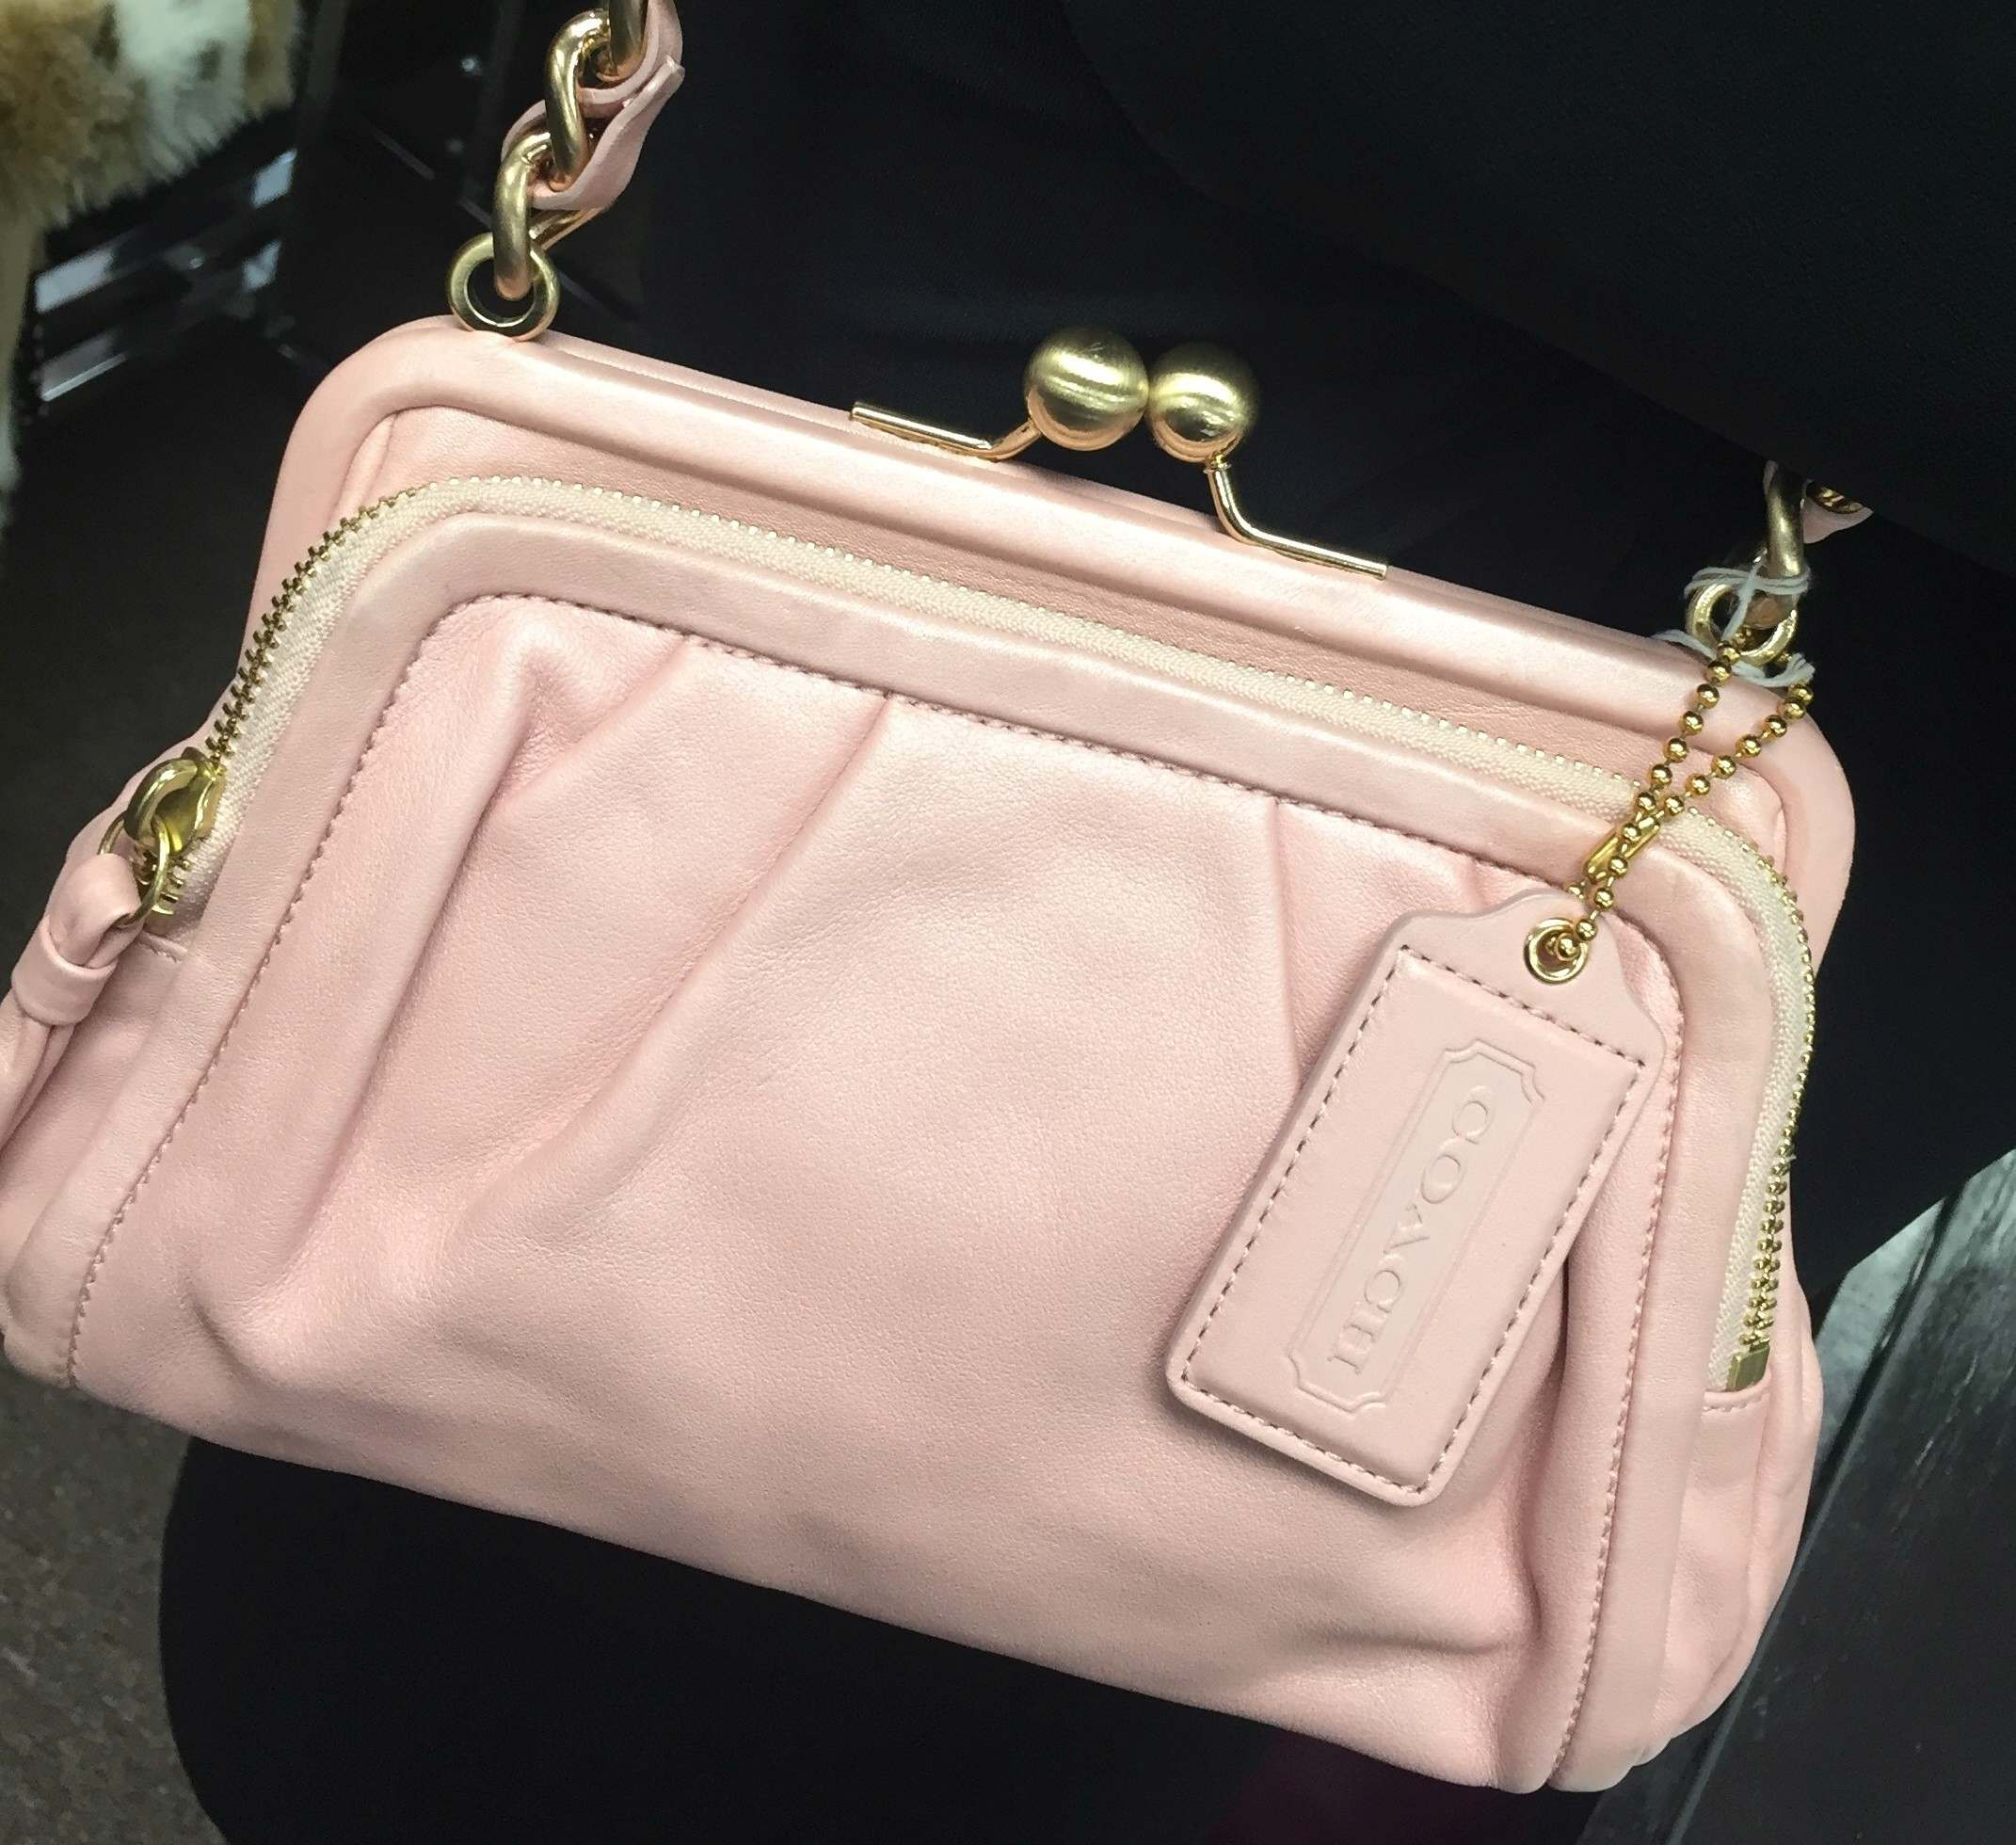 Coach Pink Handbag multi-zipper pockets with Gold chain strap